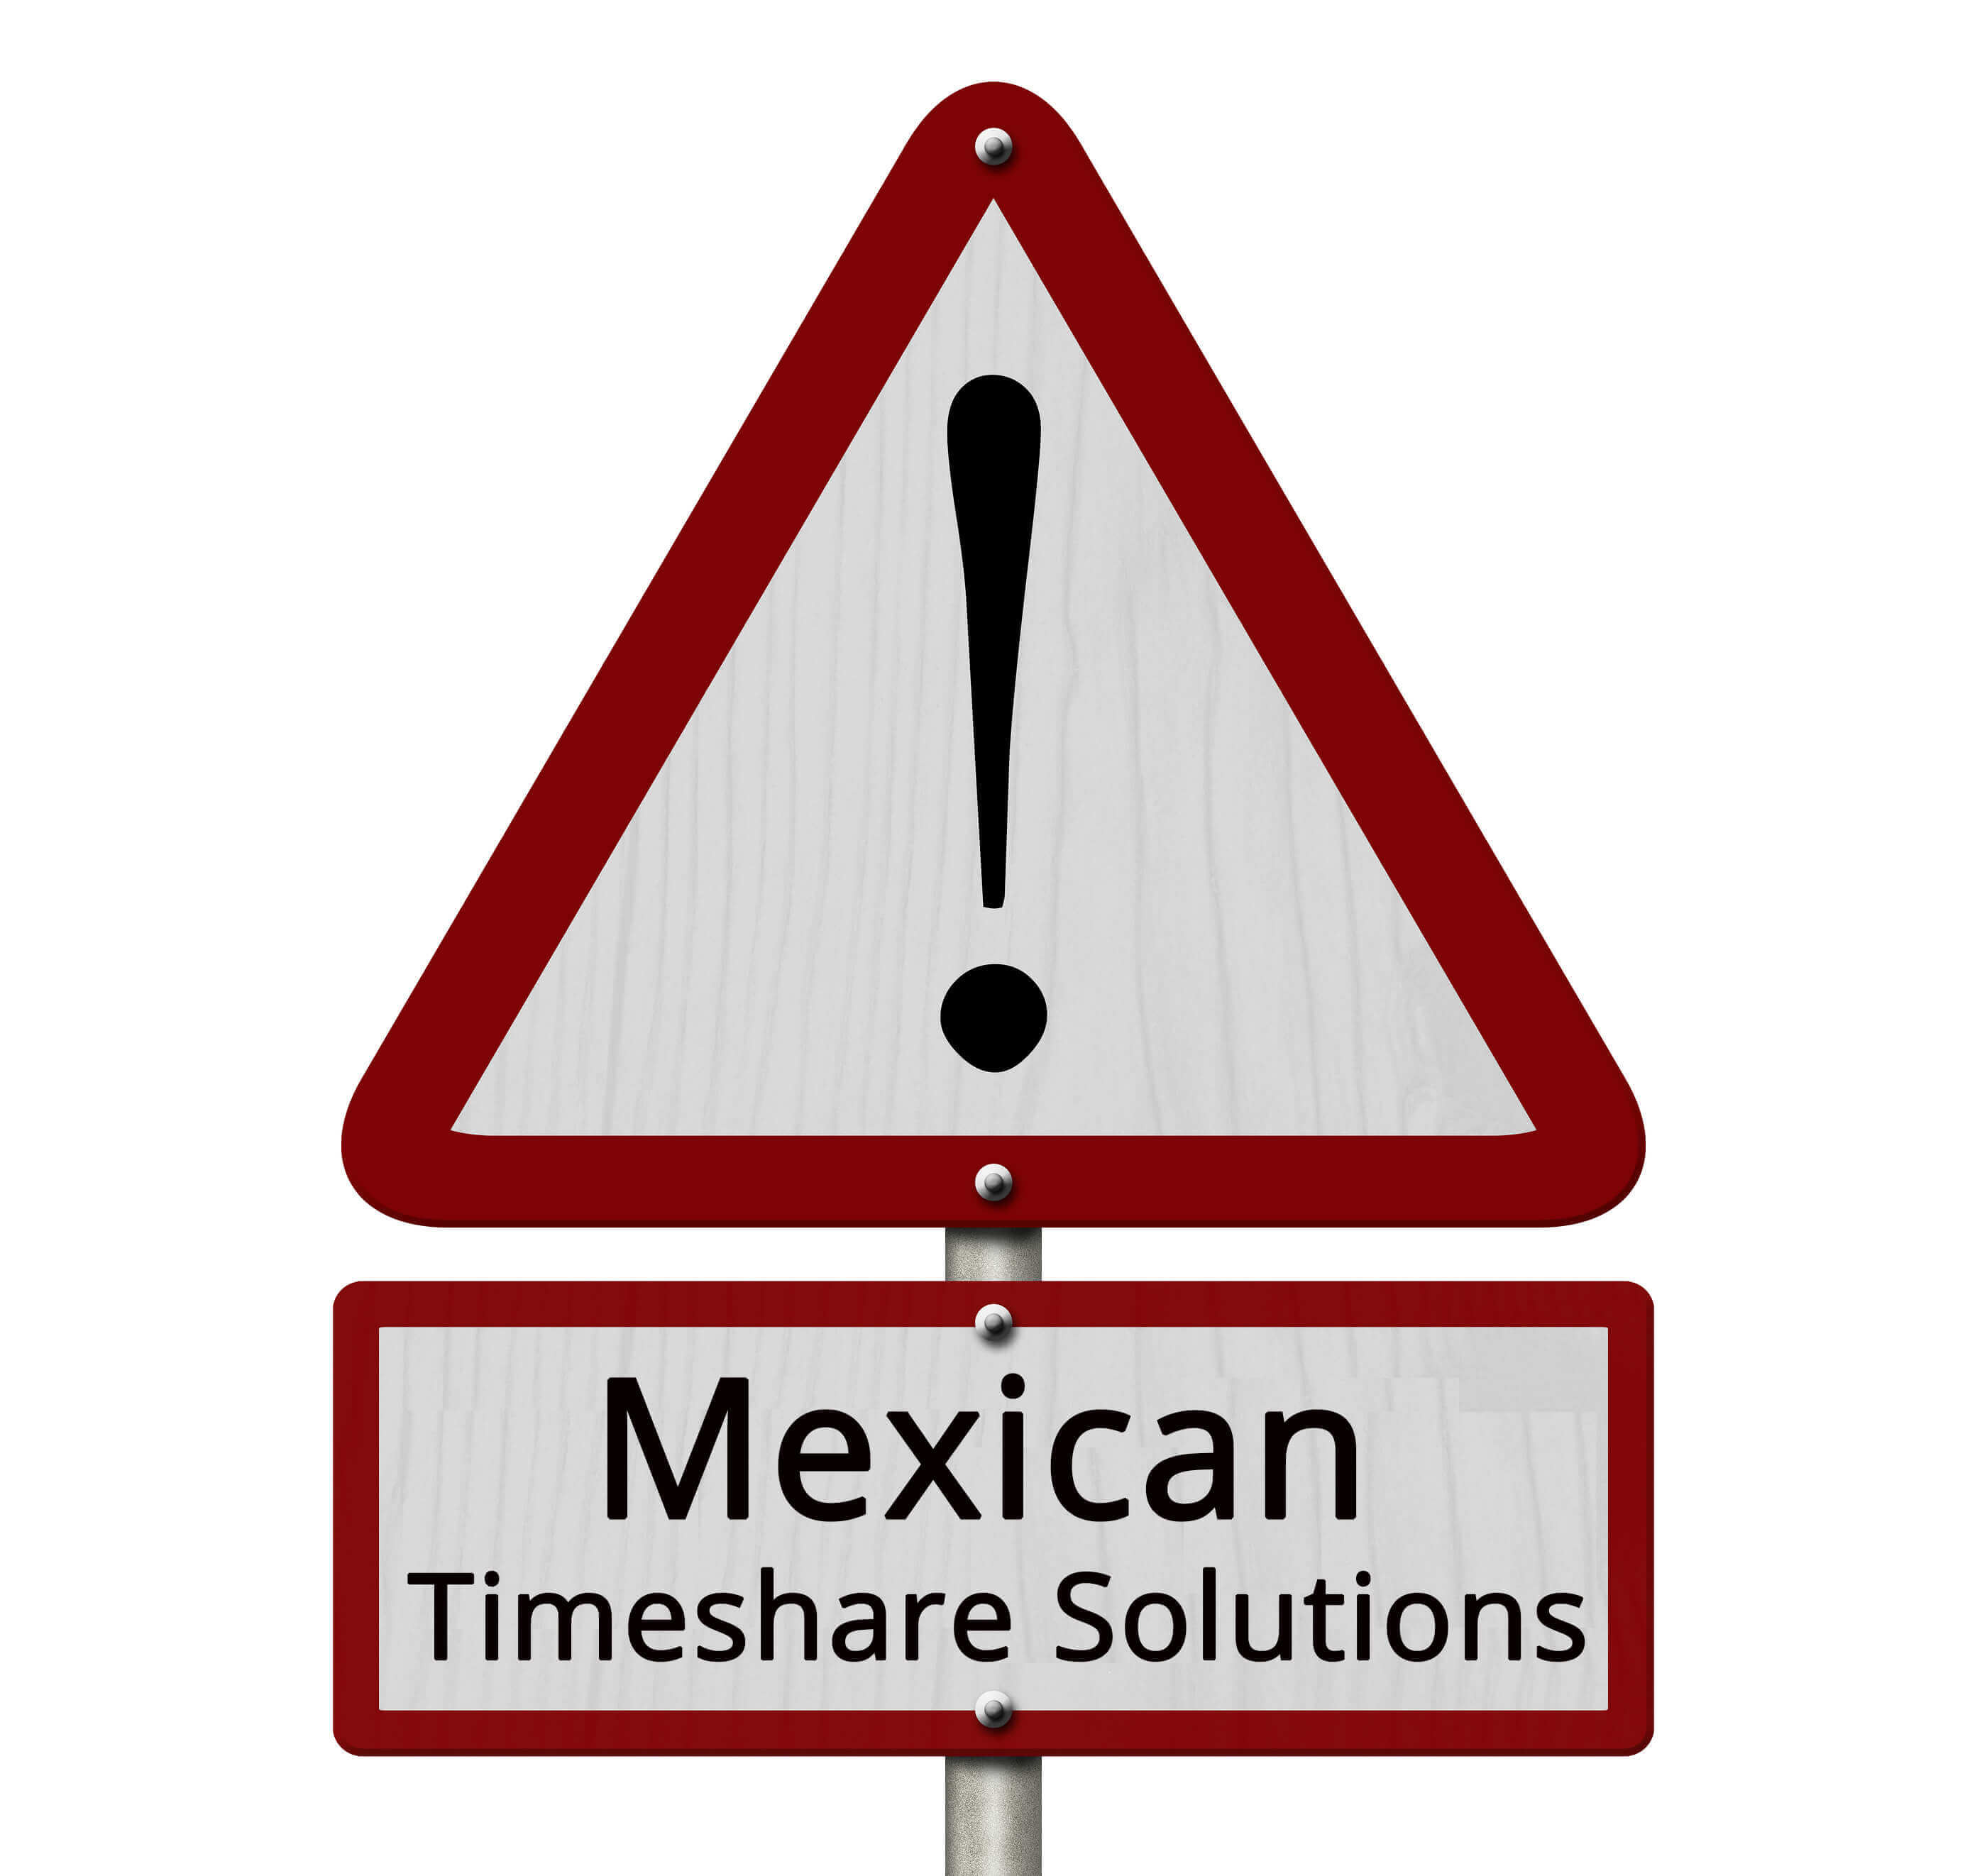 Mexican Timeshare Solutions